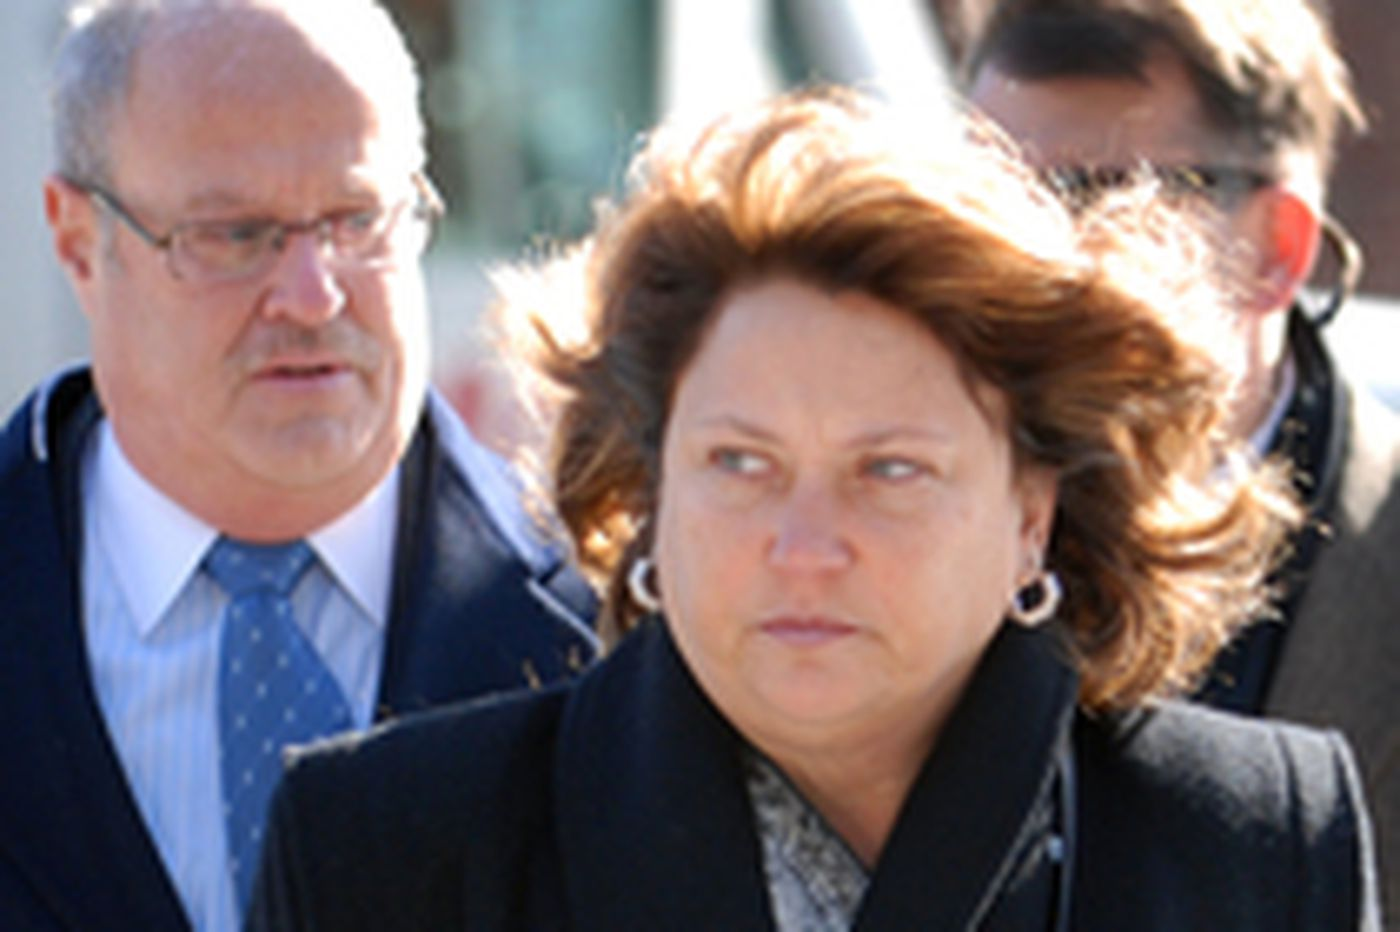 Feds want Fumo lawyers off case